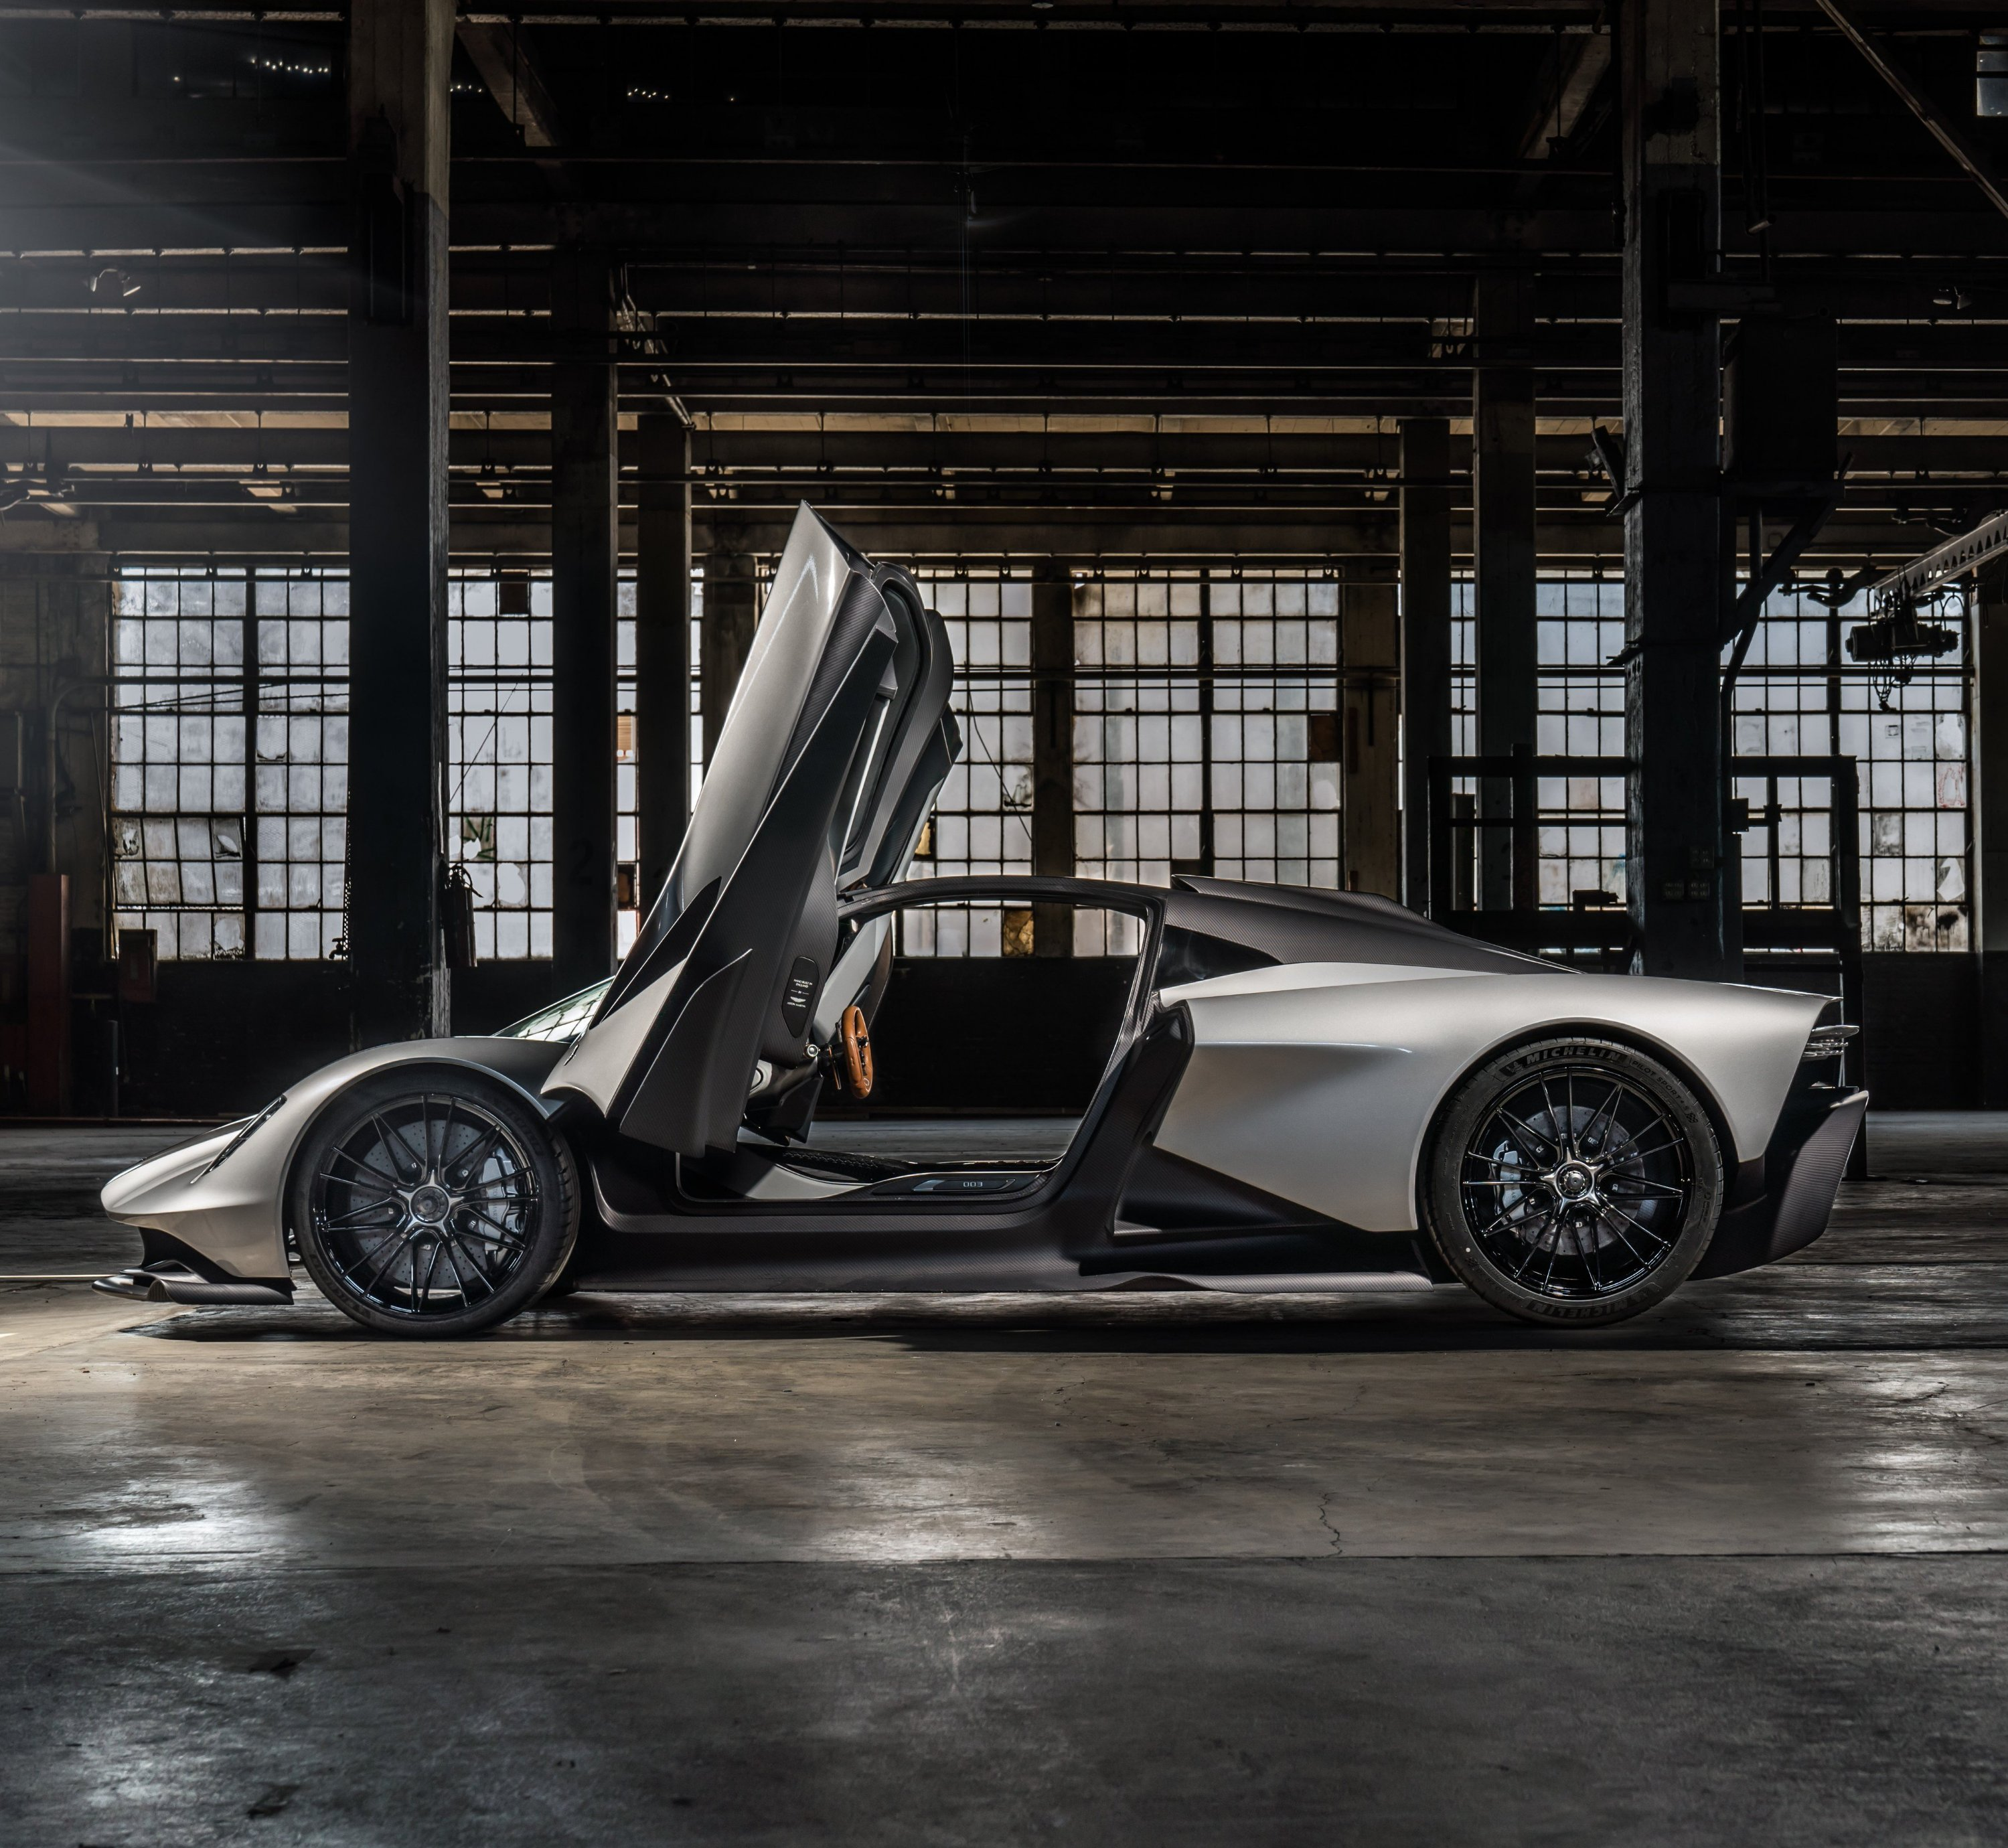 Aston Martin Announce Four Of Their Cars To Appear In Bond